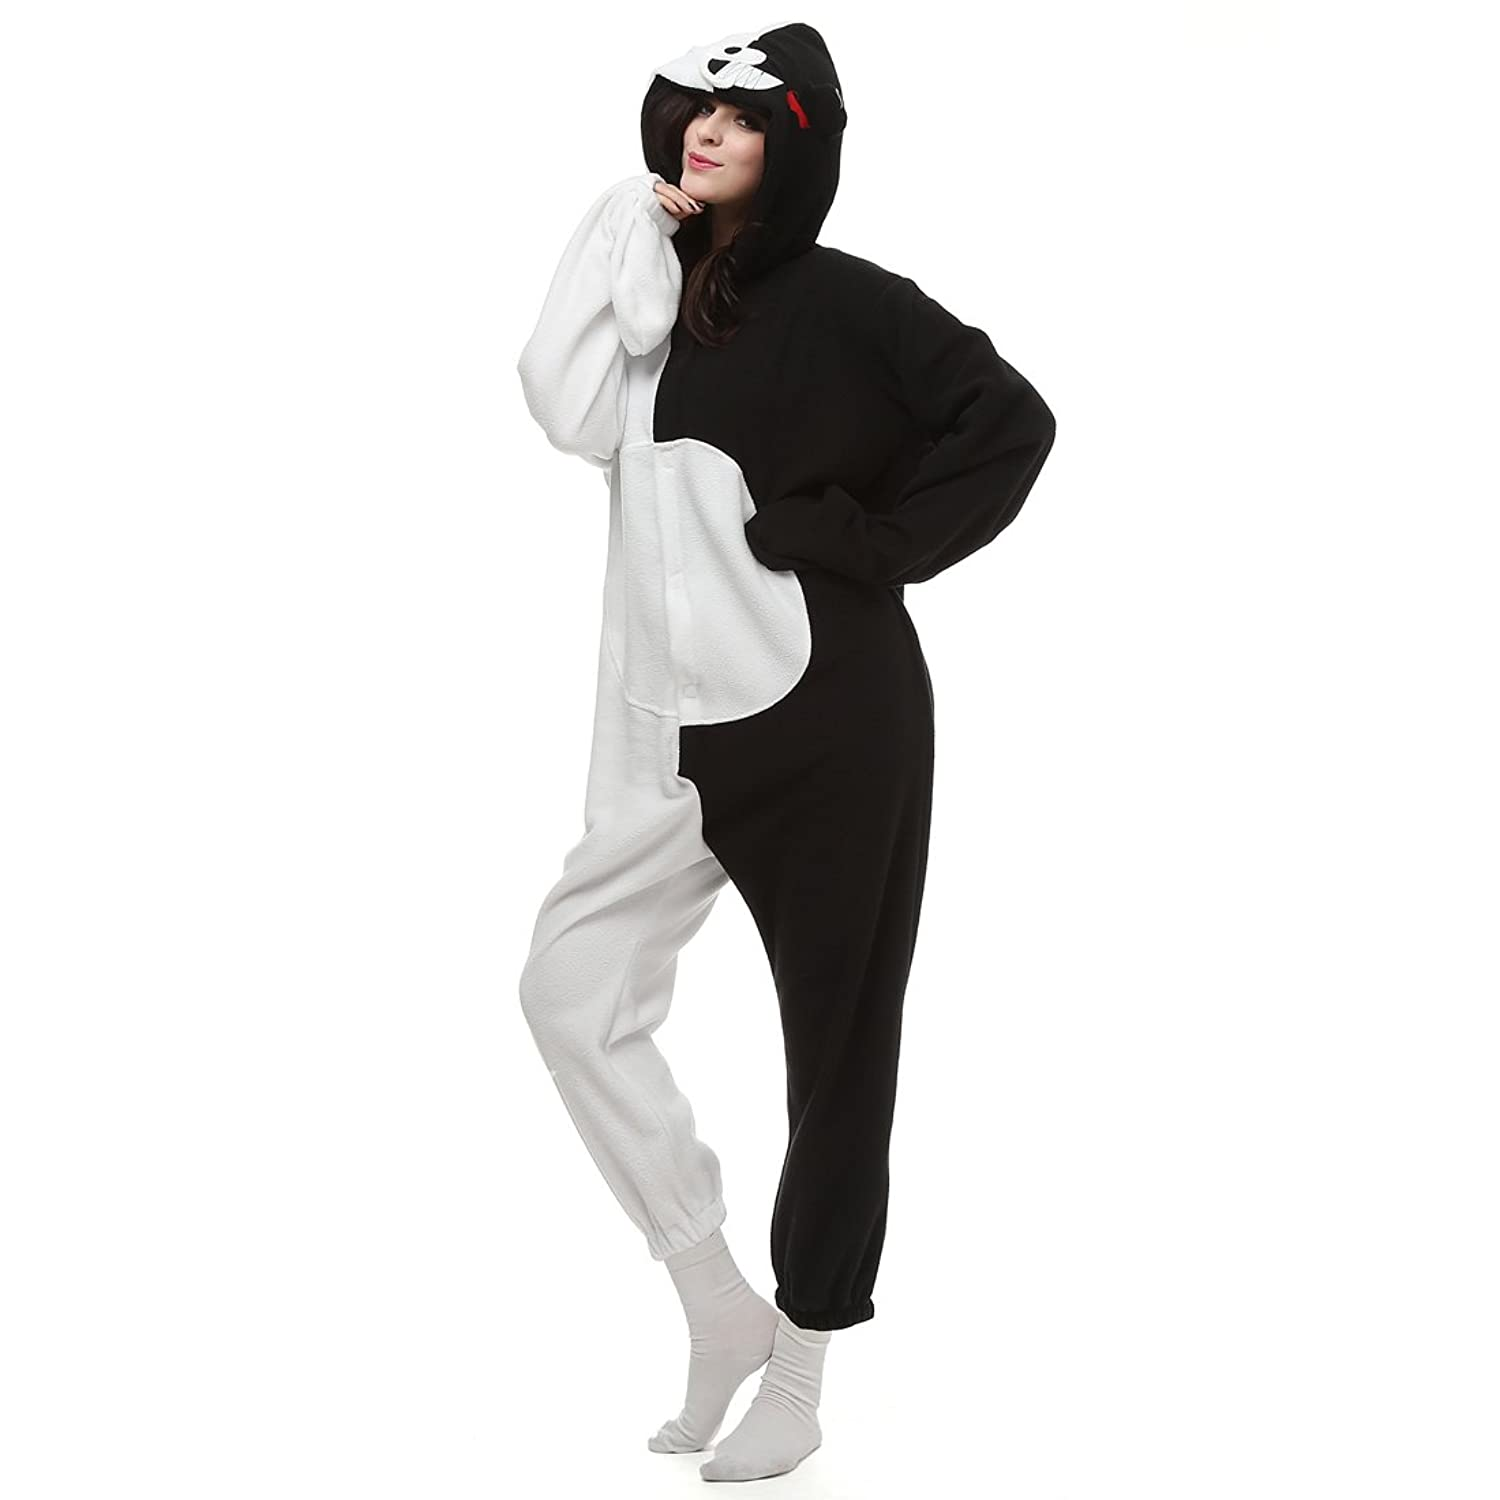 Casa Adult Pajamas - Unisex Fleece Onesie Sleepsuit Animal Onesies Kigurumi Hooded Pyjama Nightwear Costume One-Piece Bear S-XL